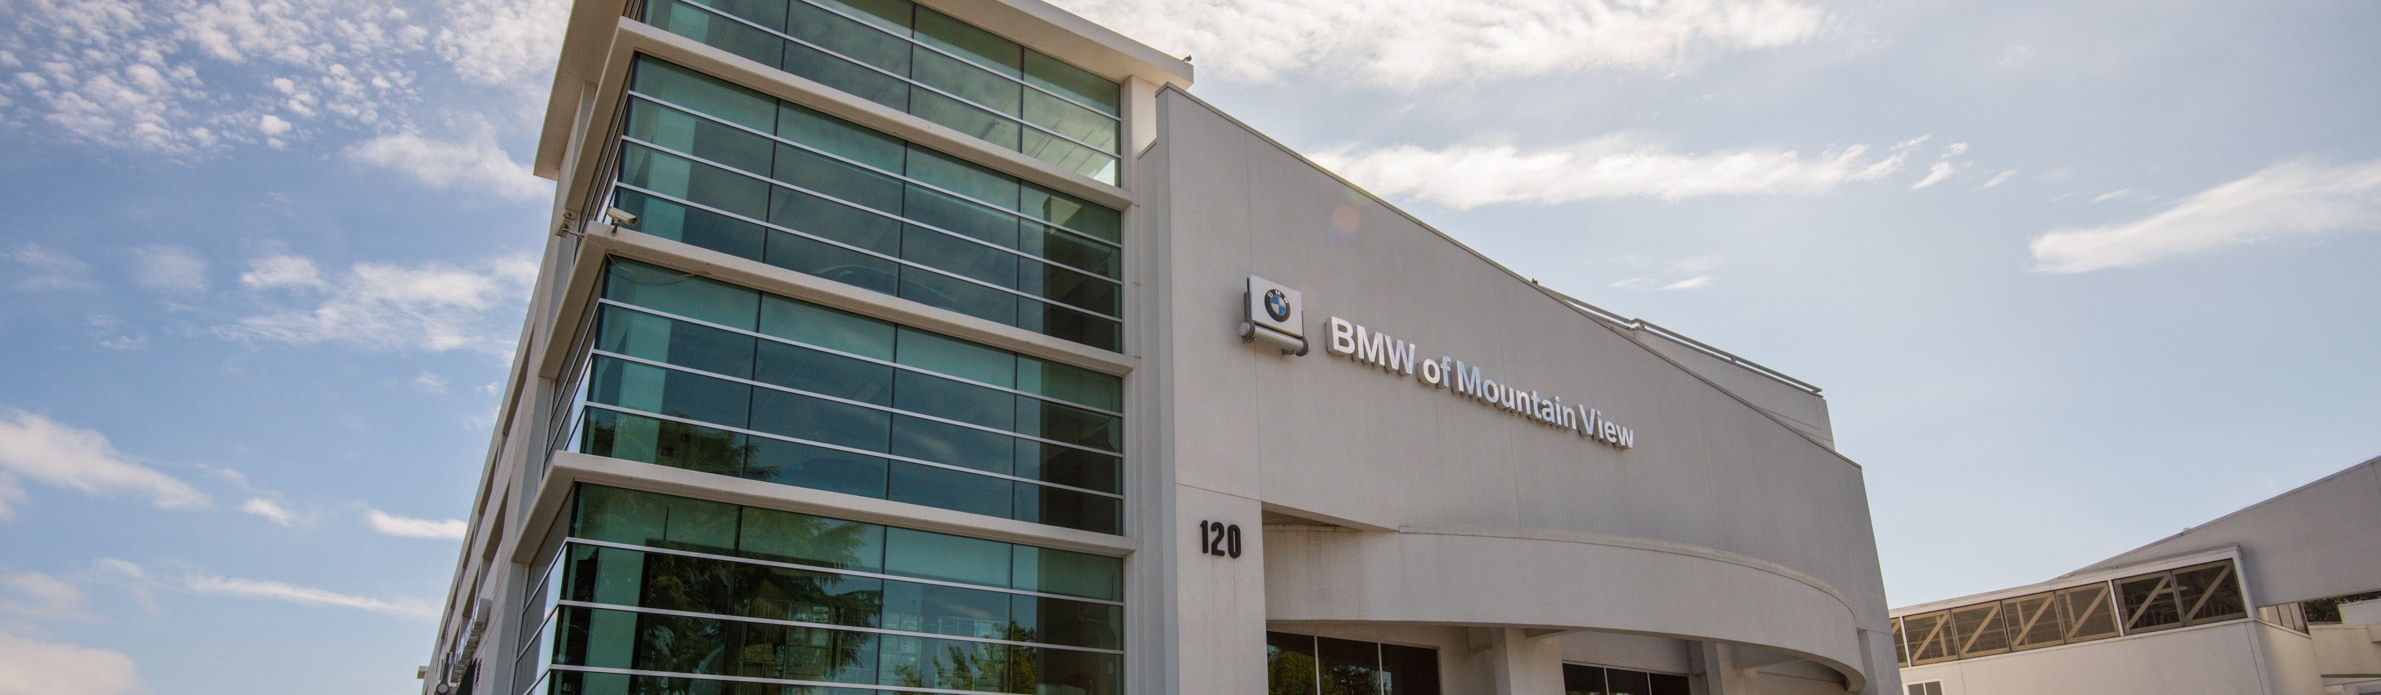 Bmw Mountain View >> Bmw Of Mountain View General Manager S Specials Mountain View Ca